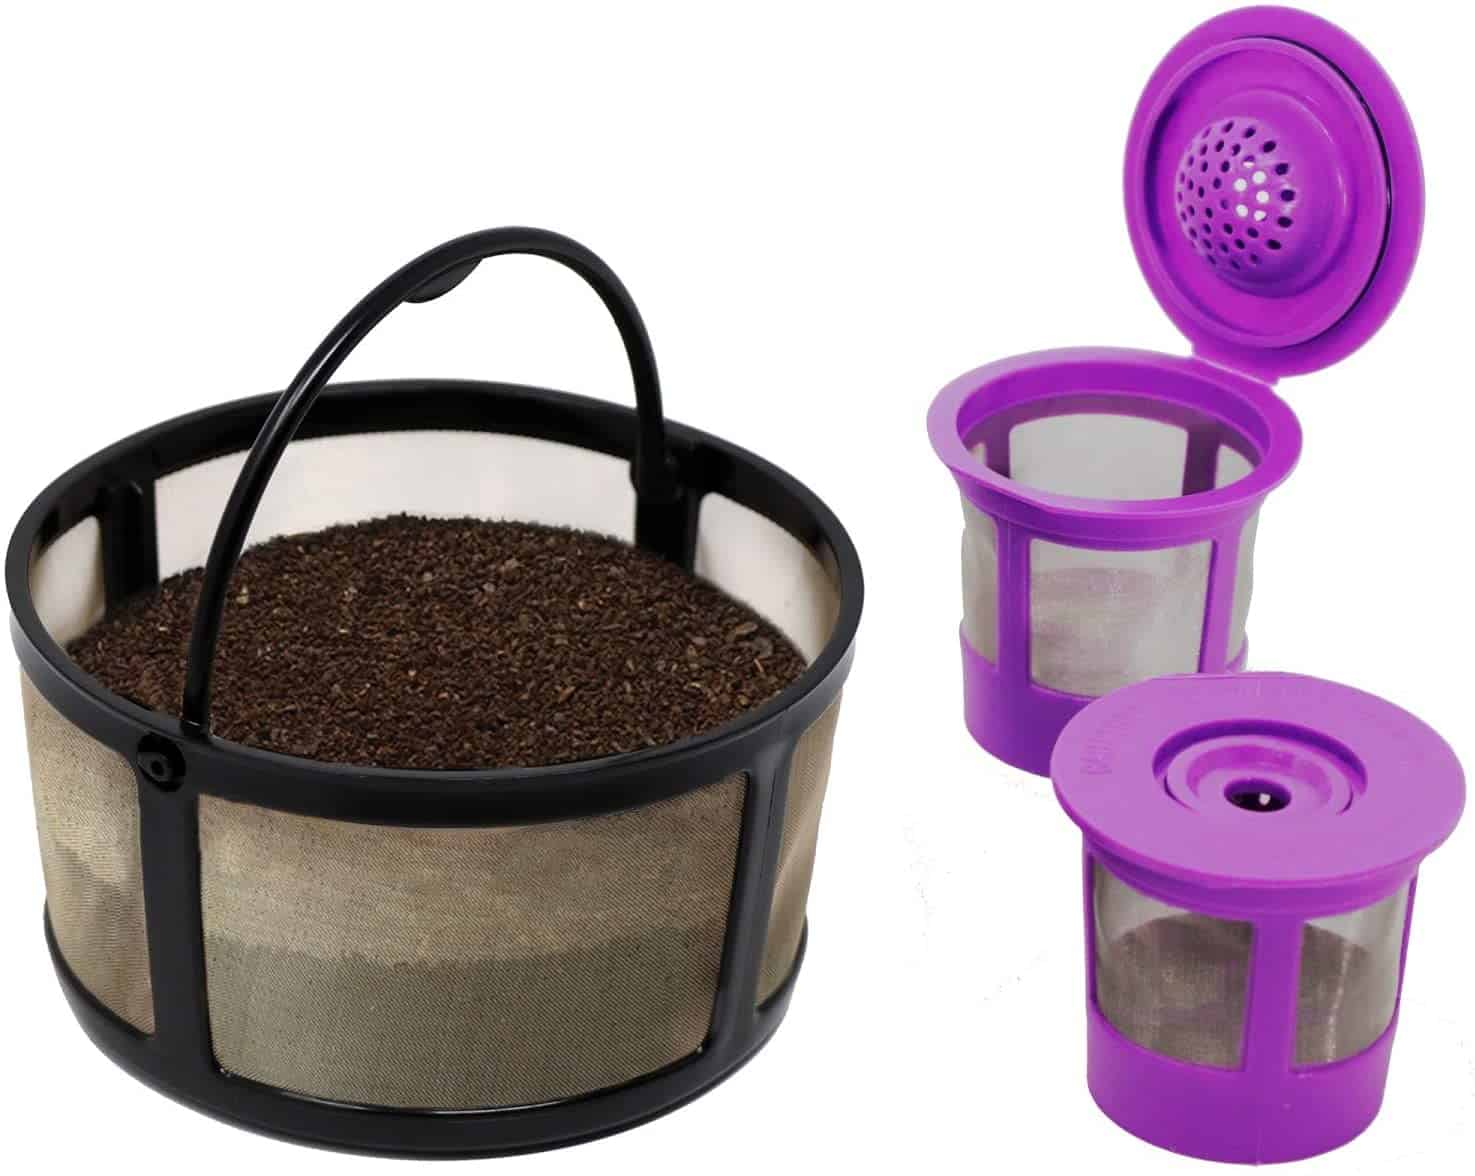 K-Duo Reuseable Mesh Carafe Filter and Reuseable K-Cups